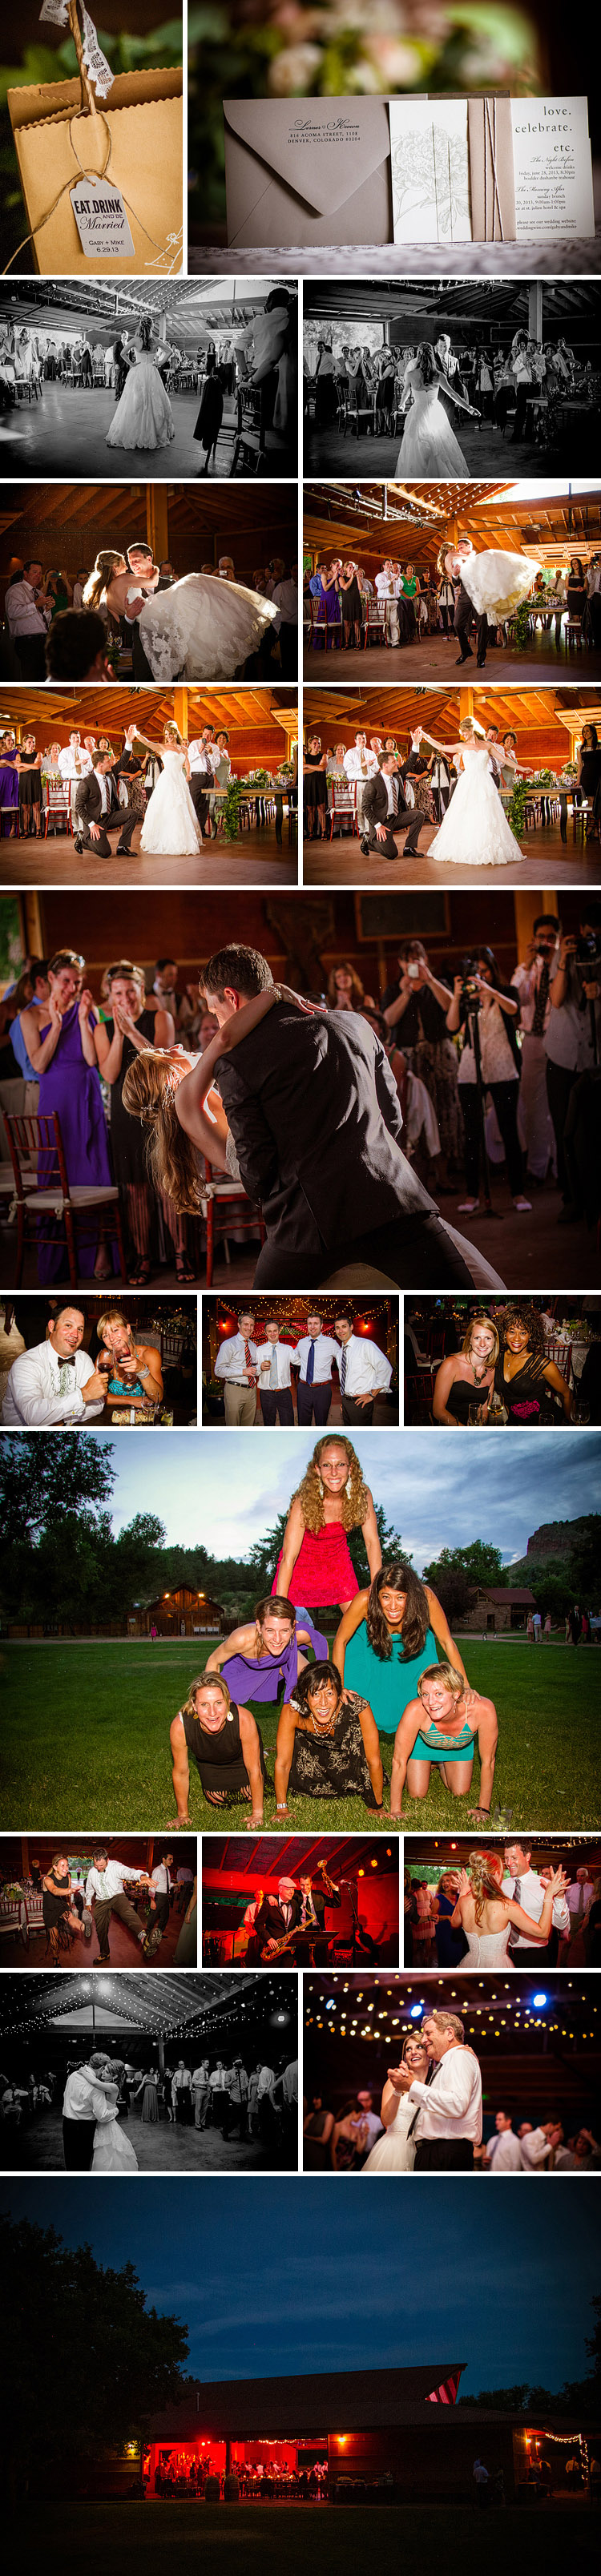 planet-bluegrass-wedding-07